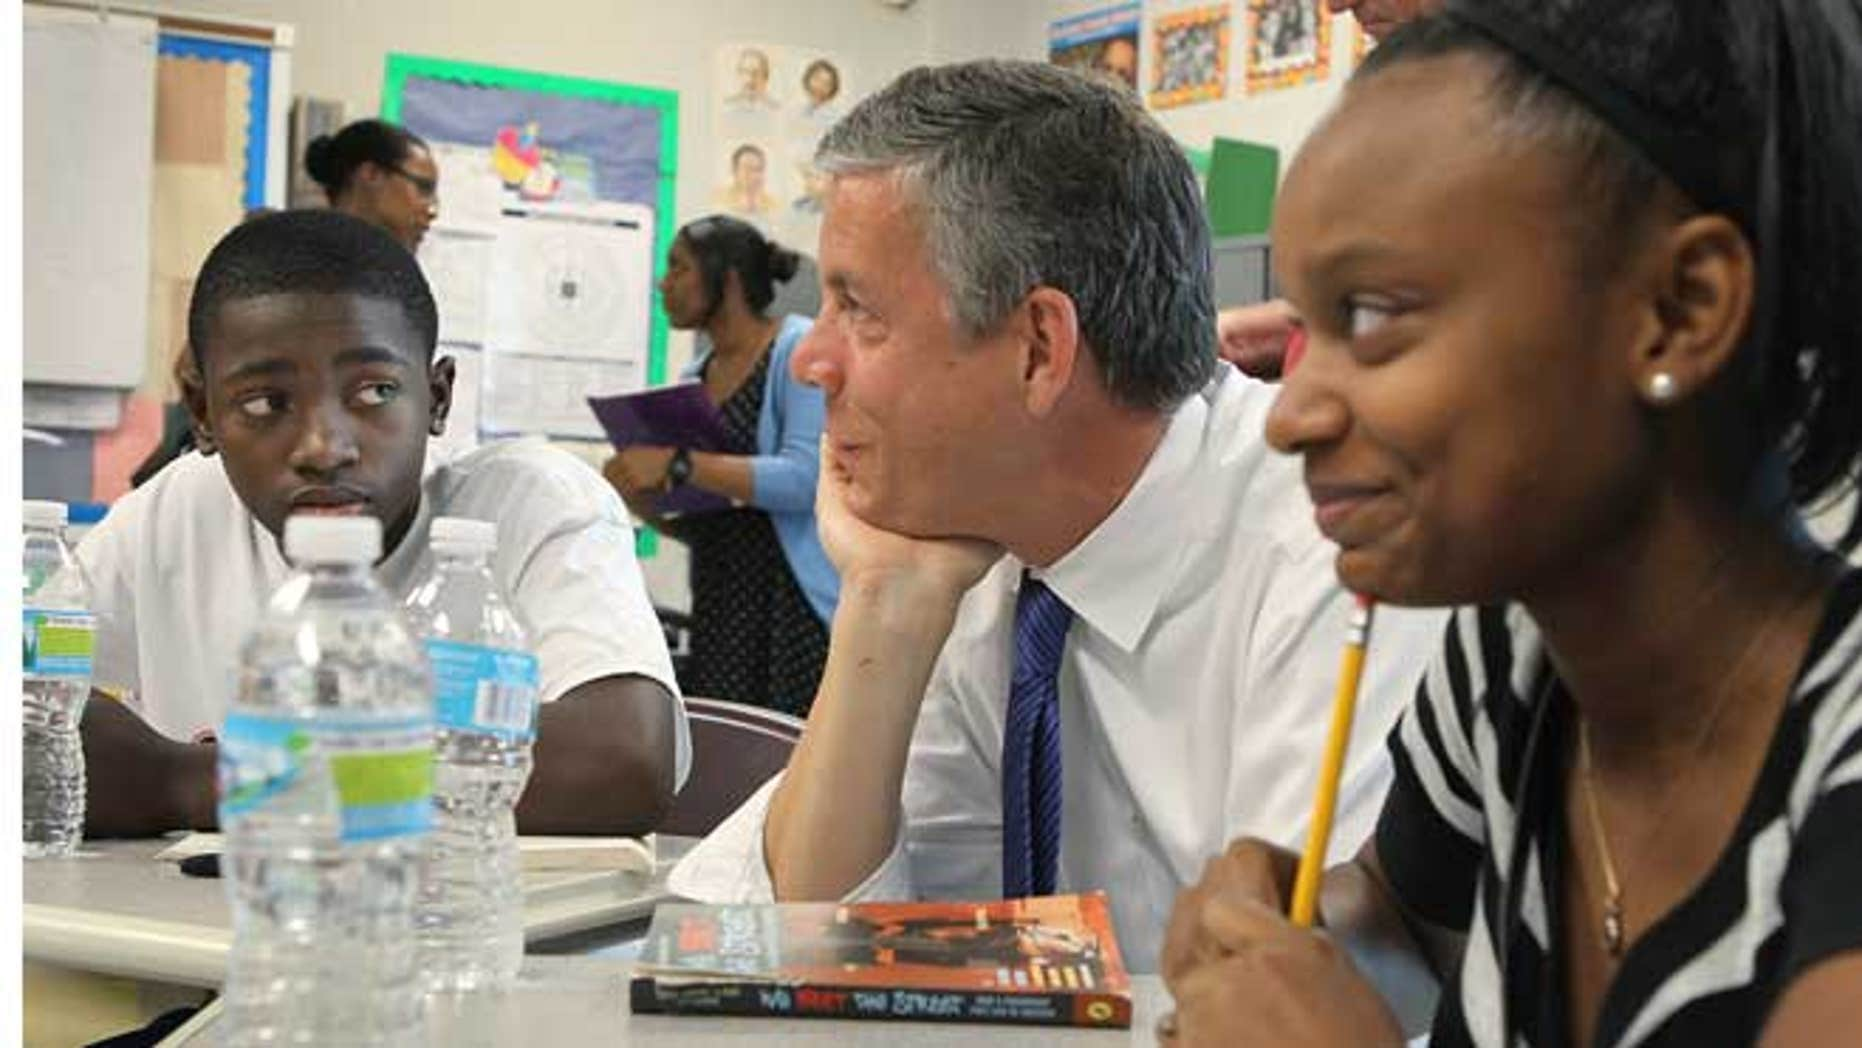 In this Monday, June 25, 2012 file photo, during a fact-finding tour of Vashon High School, U.S. Secretary of Education Arne Duncan, center, listens to eighth-grade students Delvion Mitchell, 14, and Makayla Lewis, 14, as they discuss social issues they have encountered at school and what they have learned from them, in St. Louis.